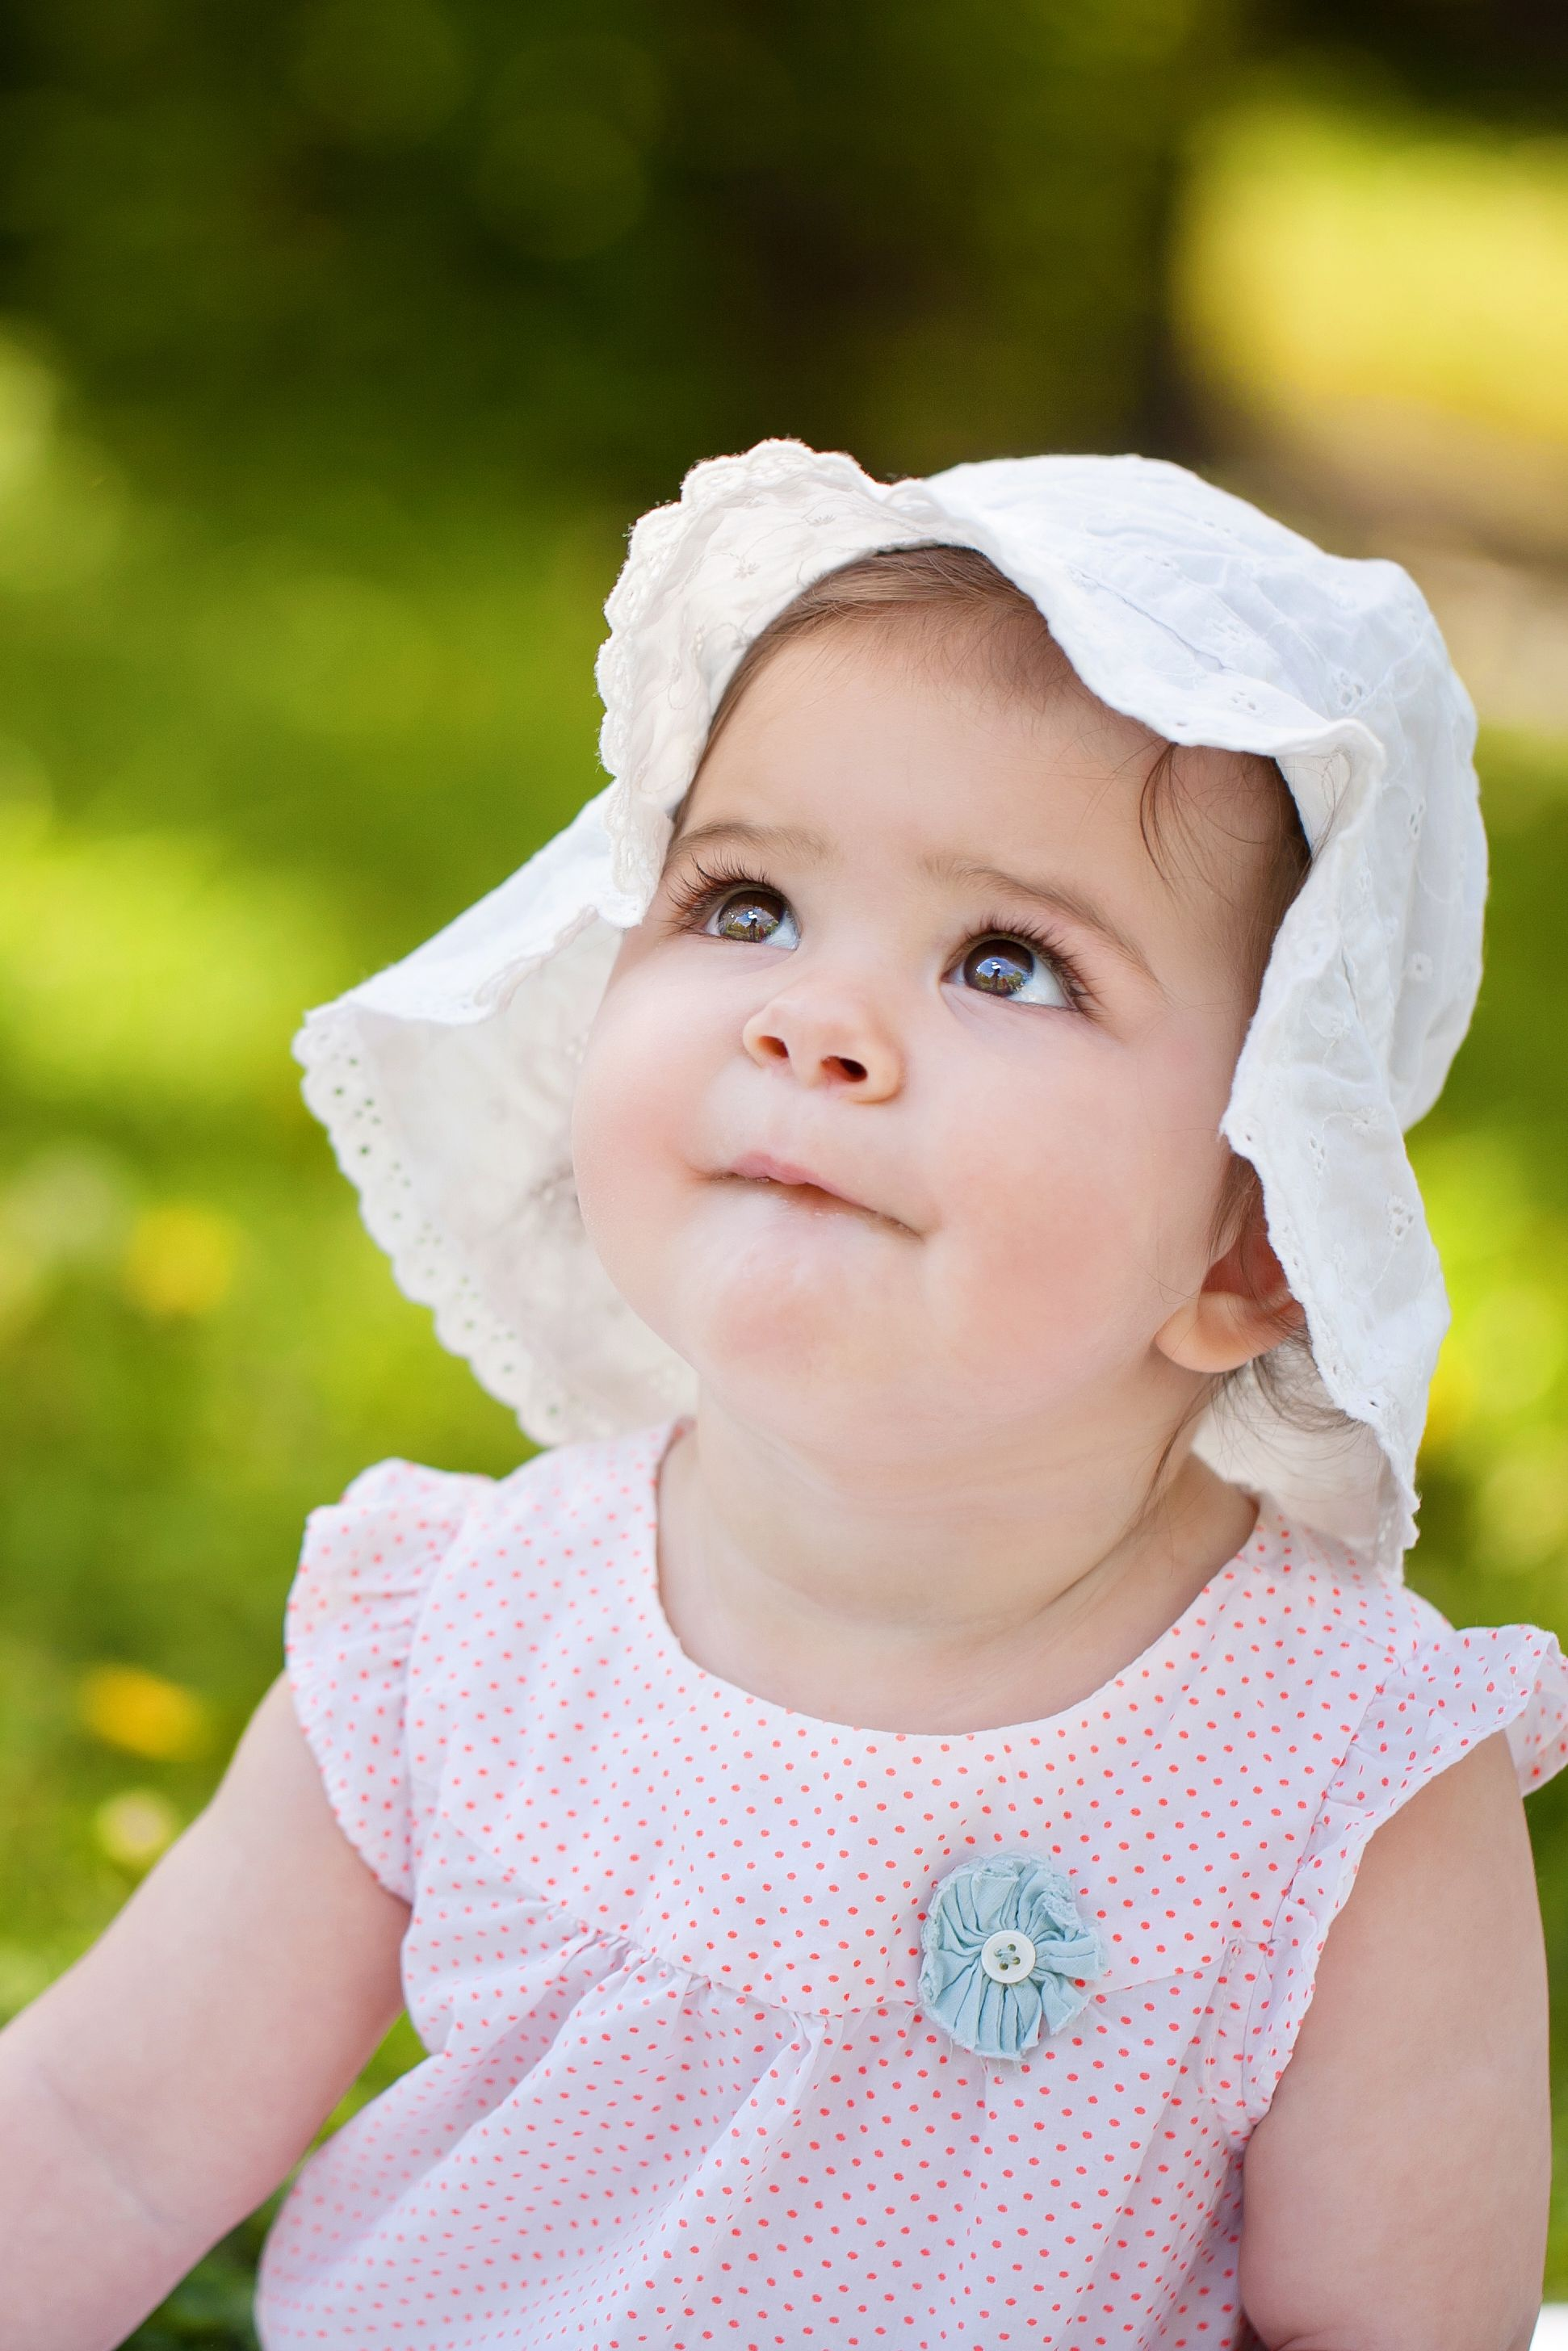 15 cool girl names for your baby - coolest baby girl name ideas